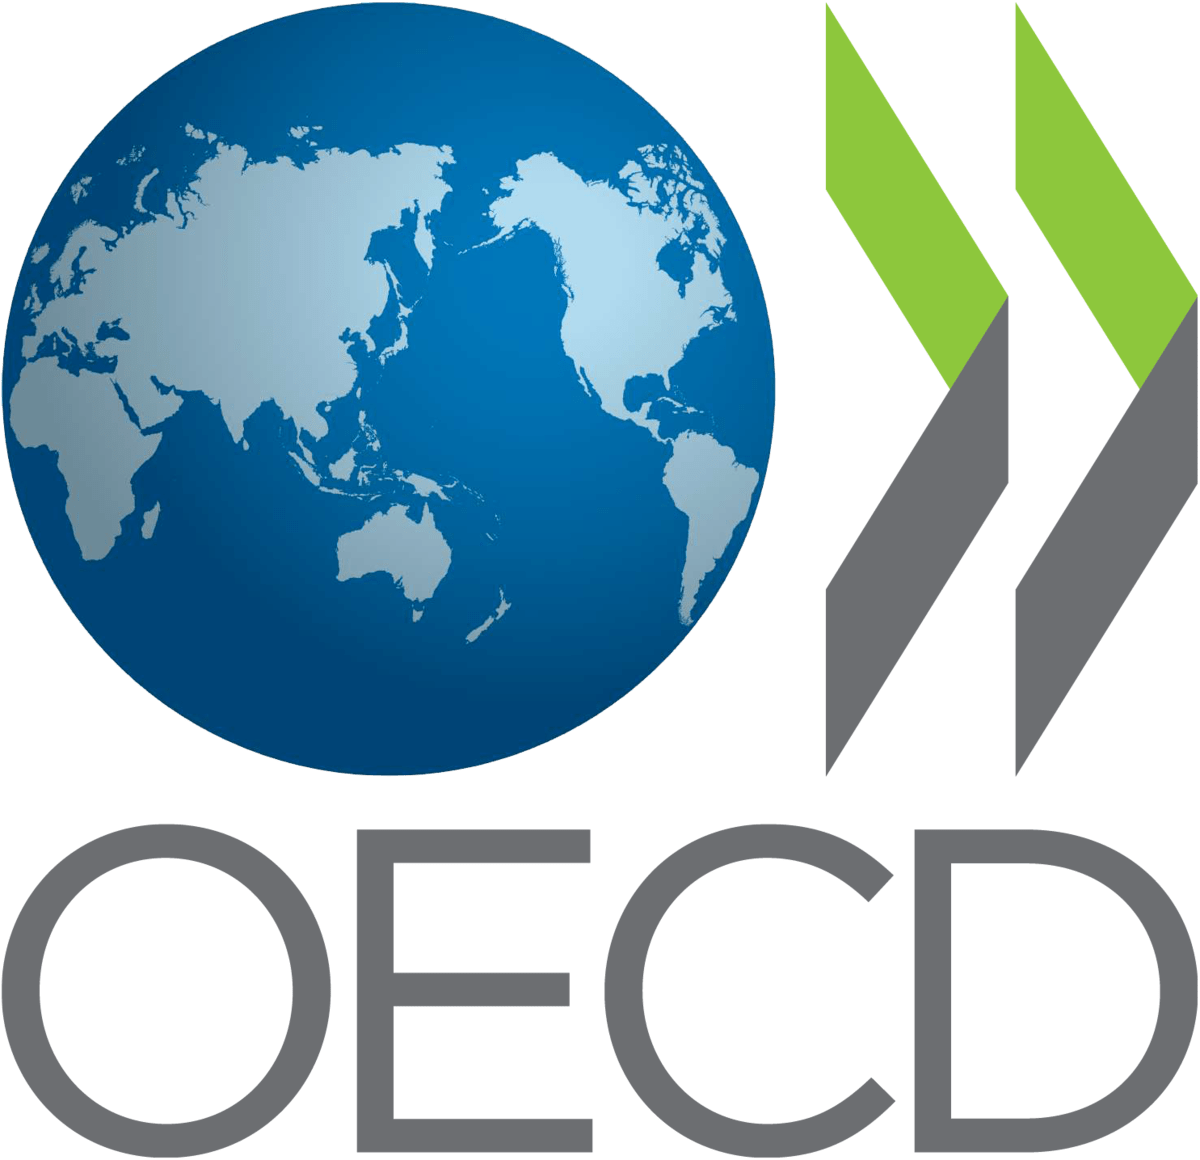 Organization for Economic Co-operation and Development